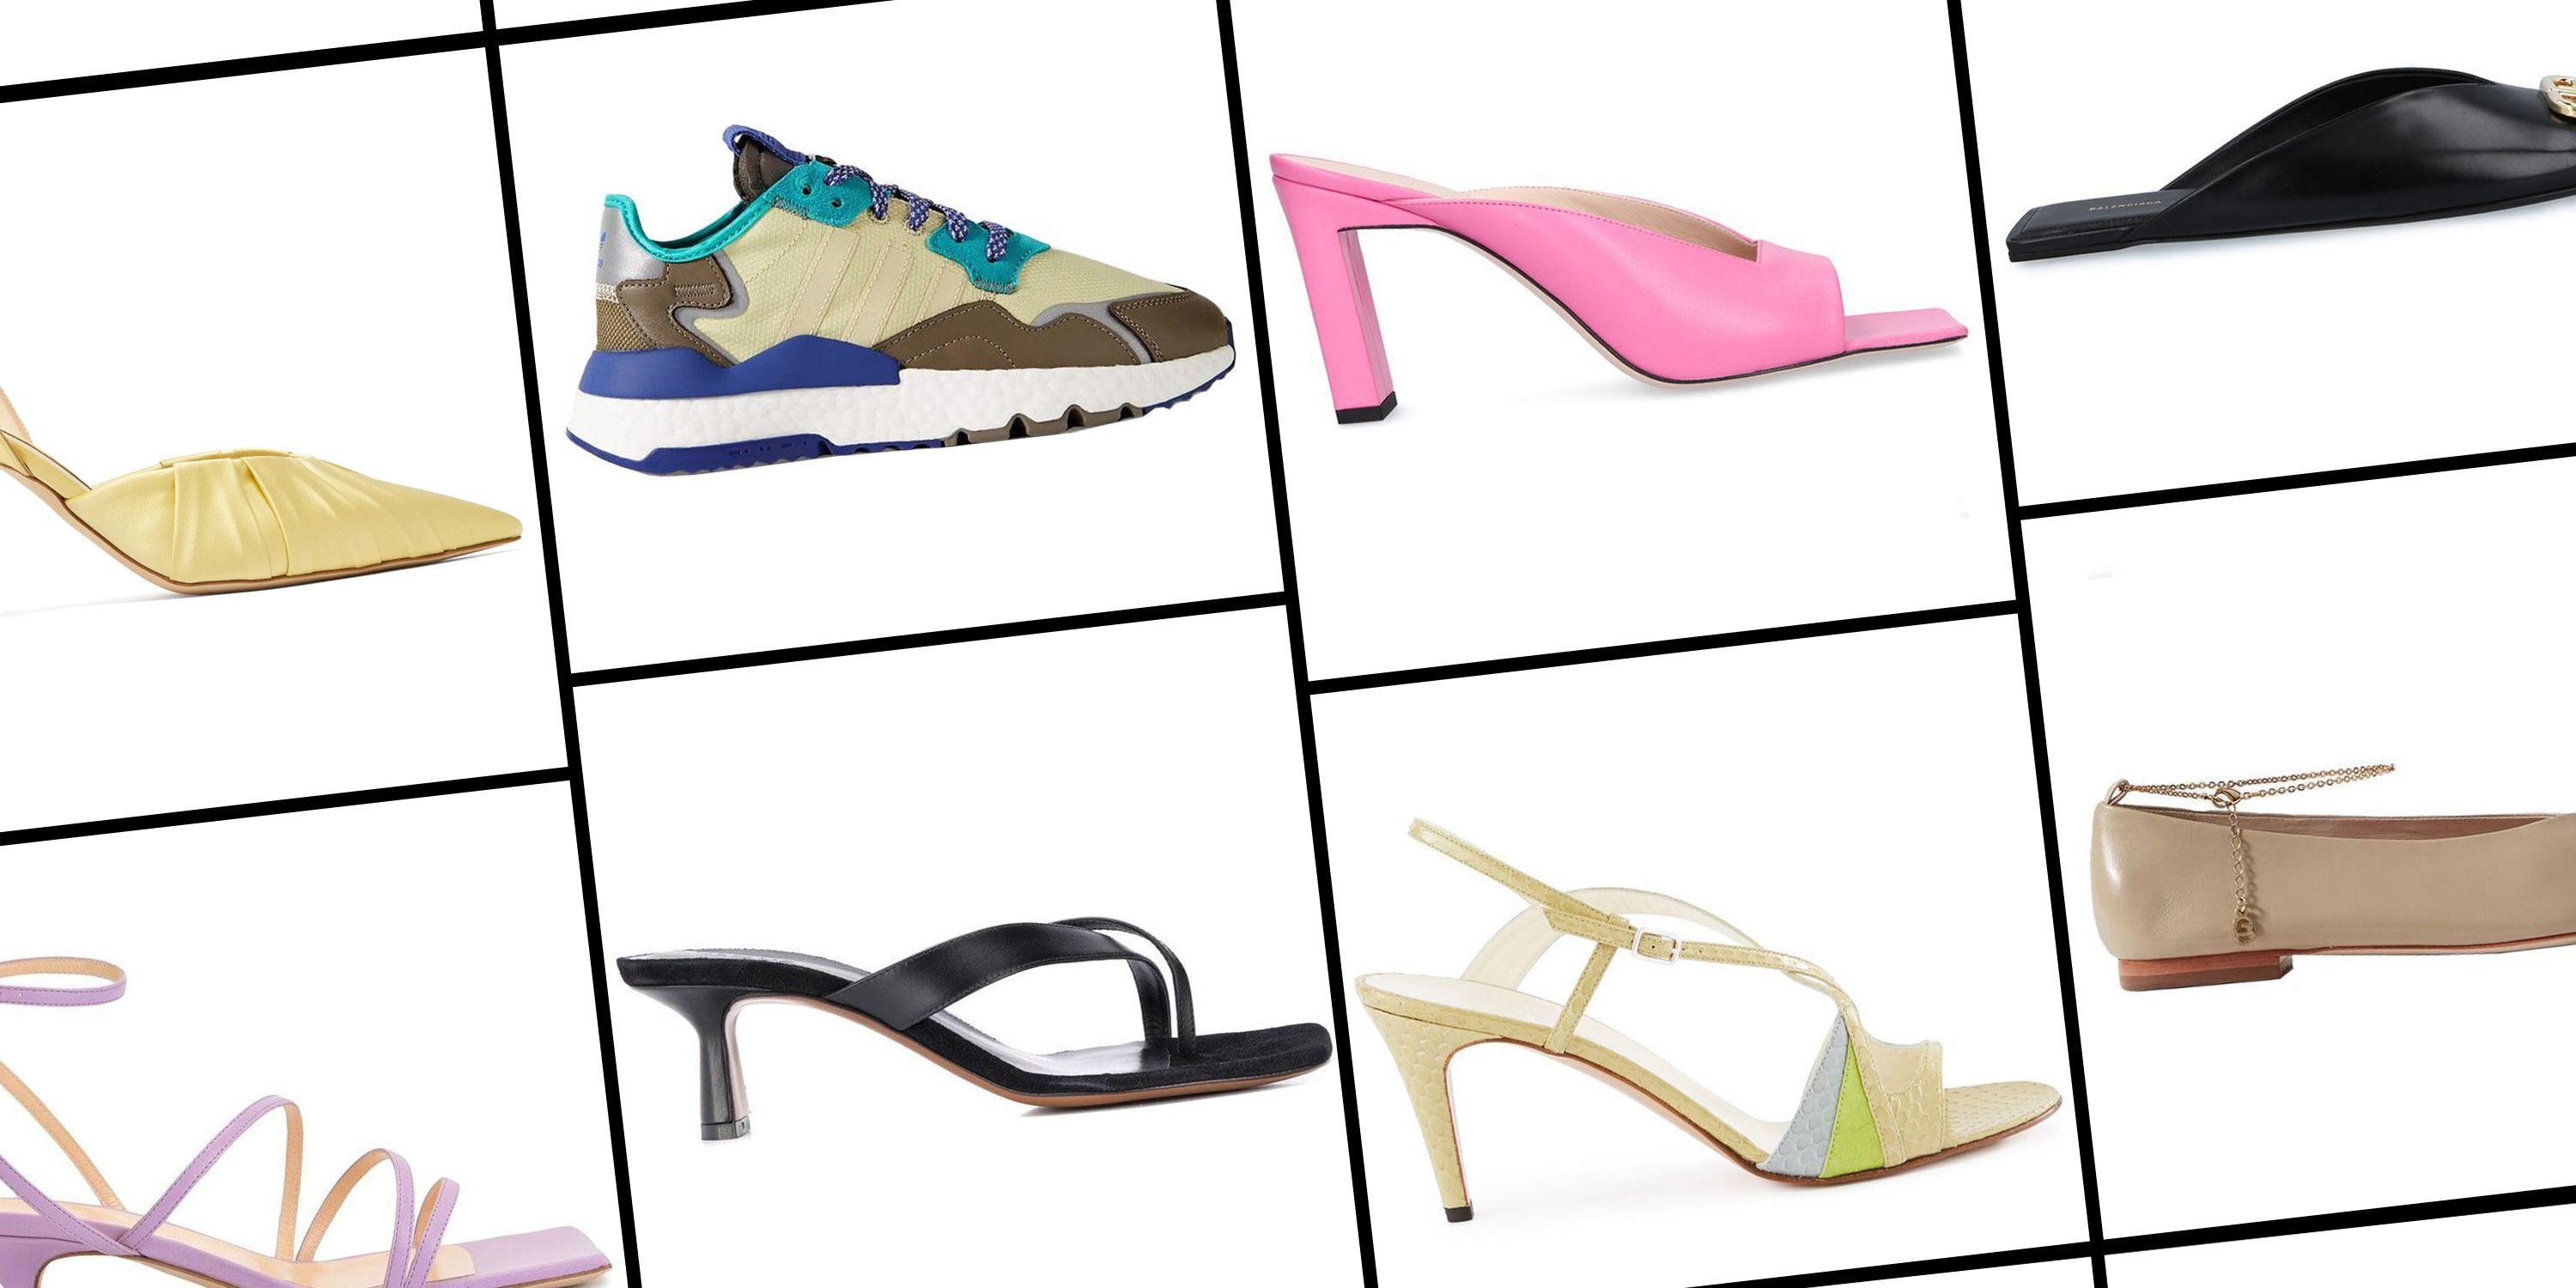 The 6 Shoe Trends to Look Forward To This Summer